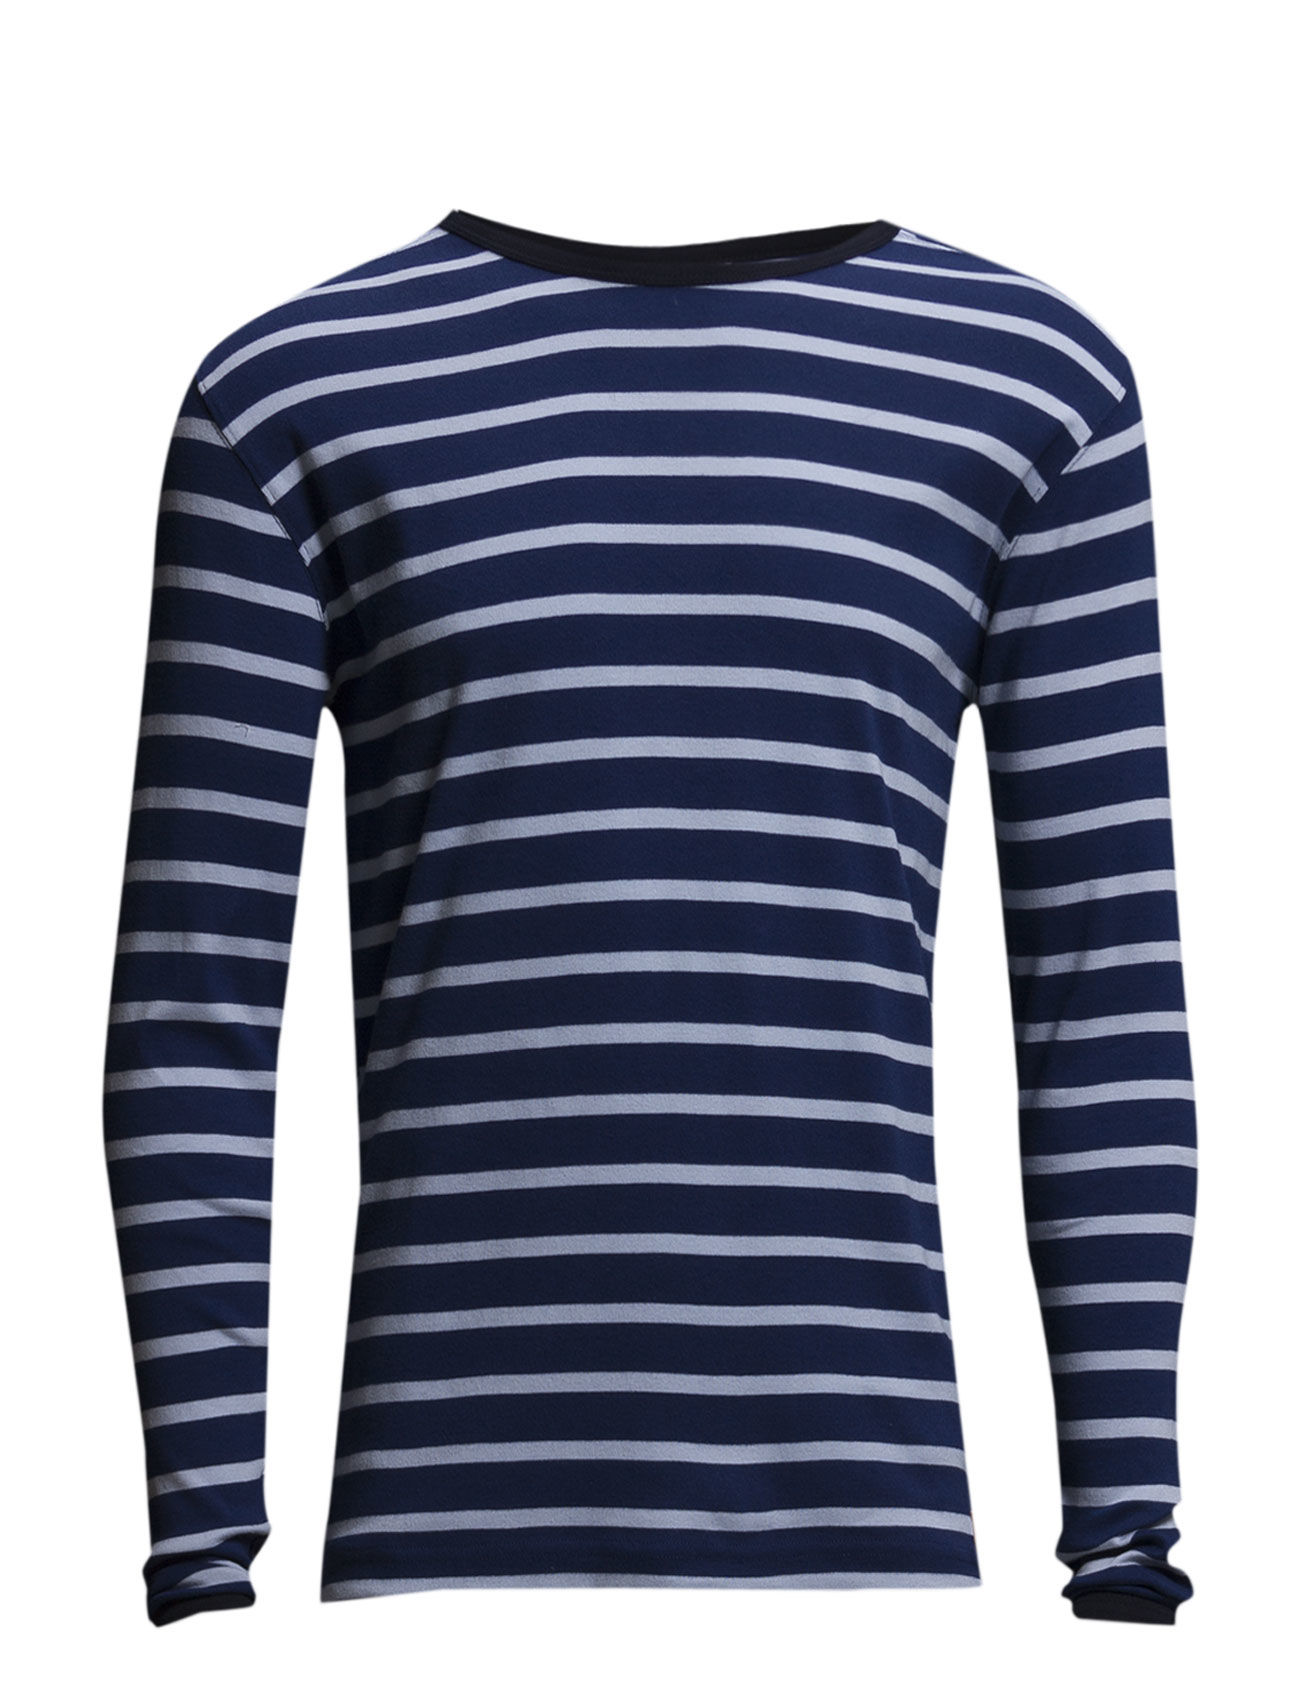 1x1 Rib Striped Long Sleeve